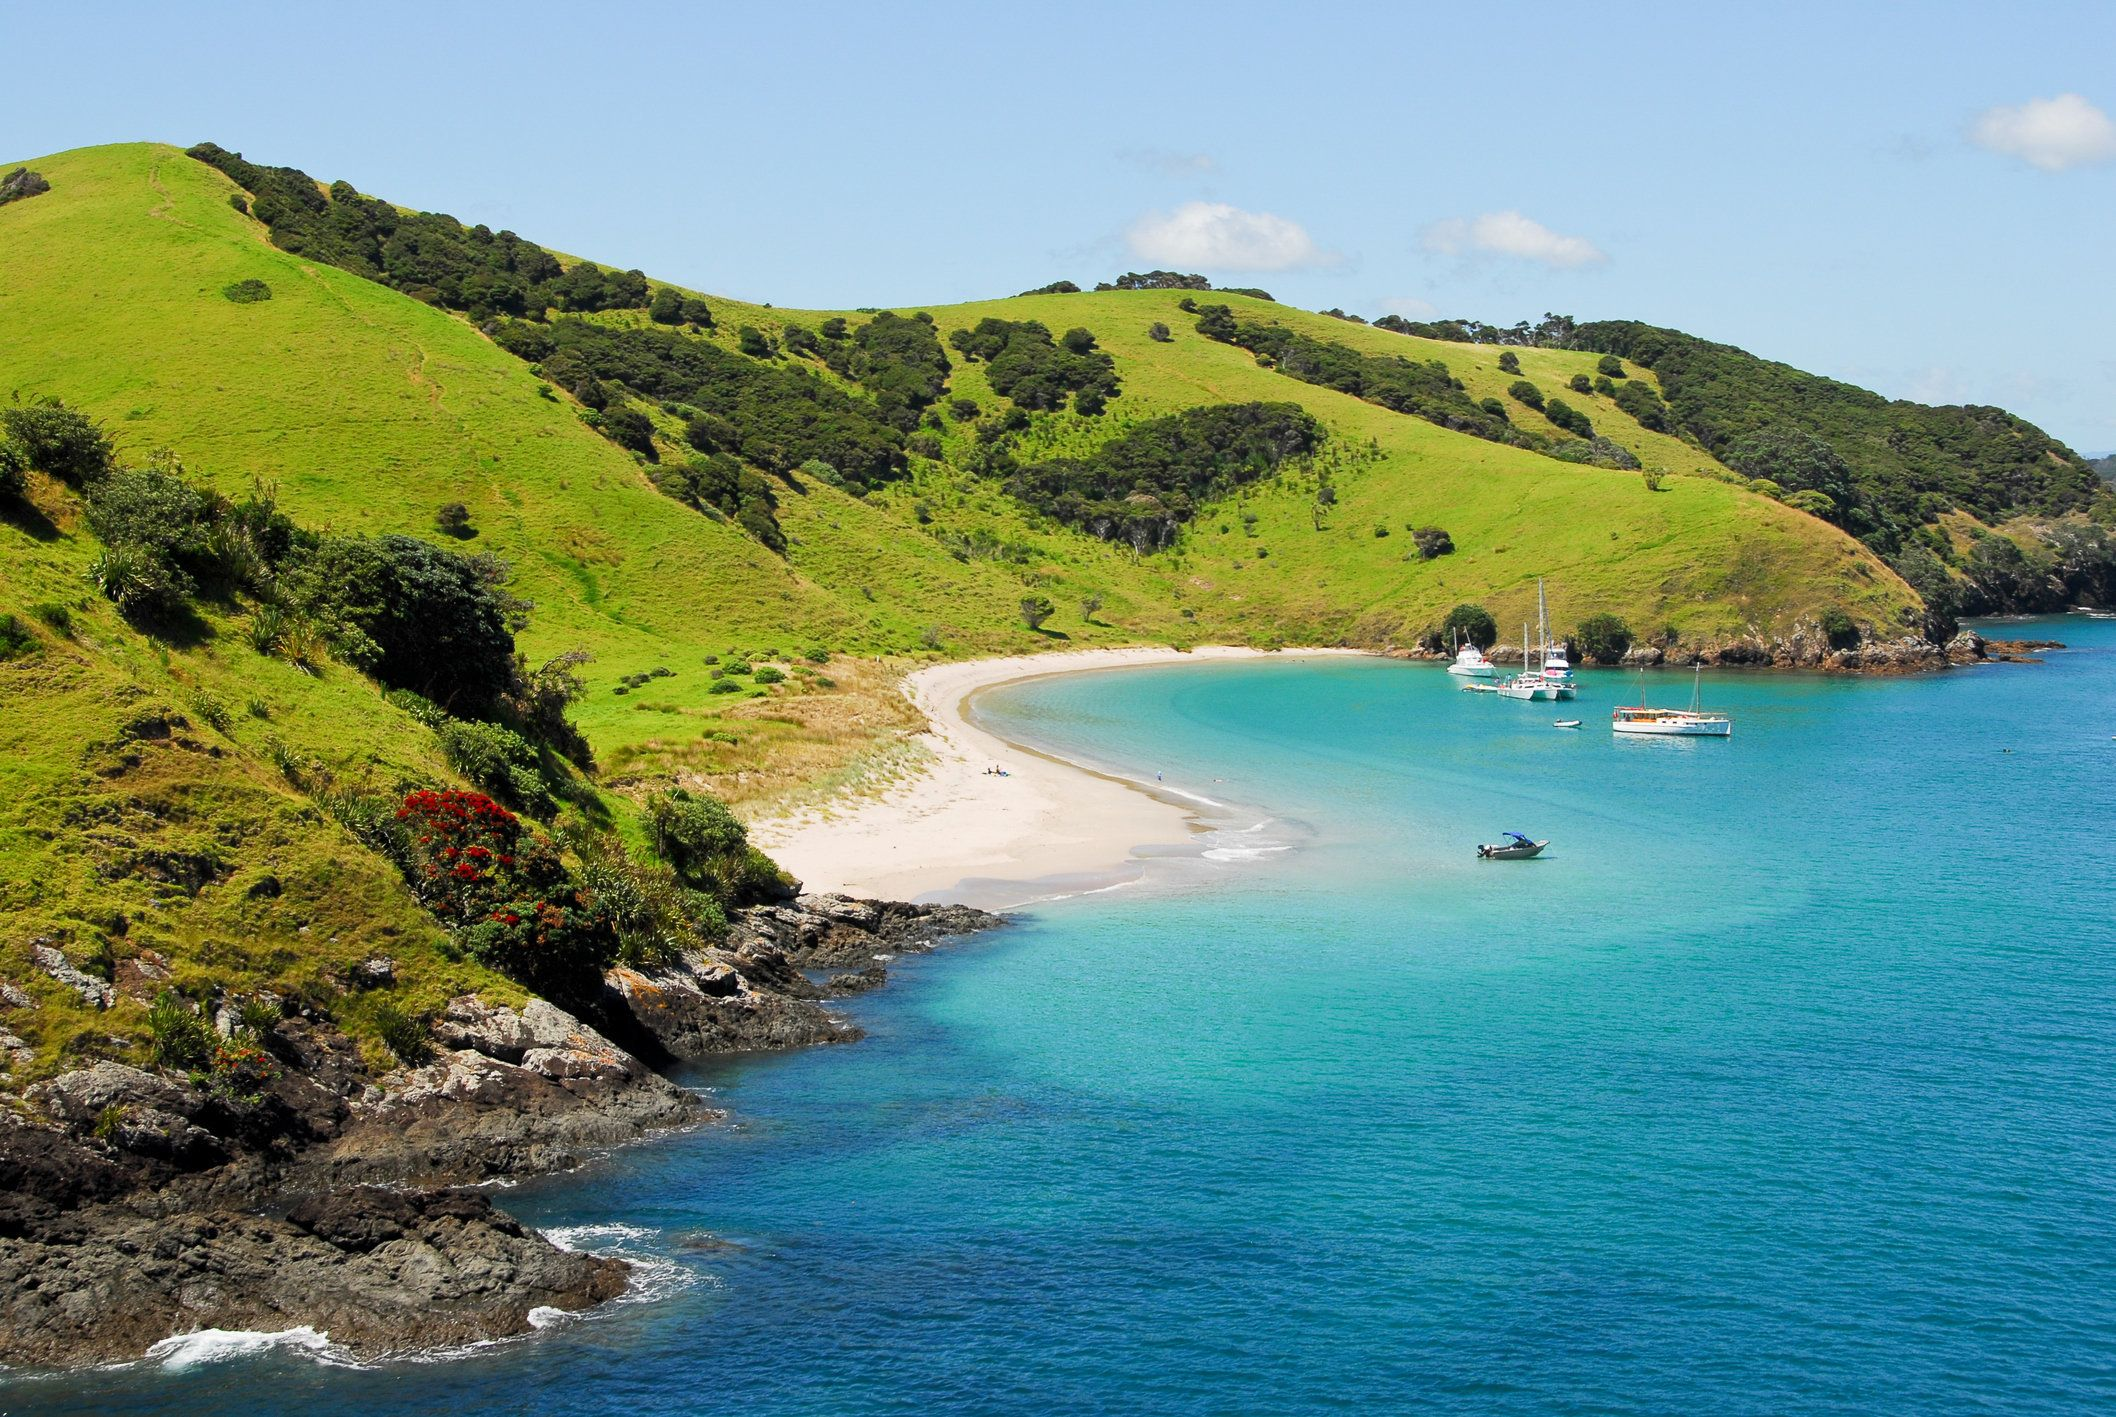 "With <a href=""https://www.lonelyplanet.com/new-zealand/travel-tips-and-articles/ten-unforgettable-new-zealand-beaches"" target"